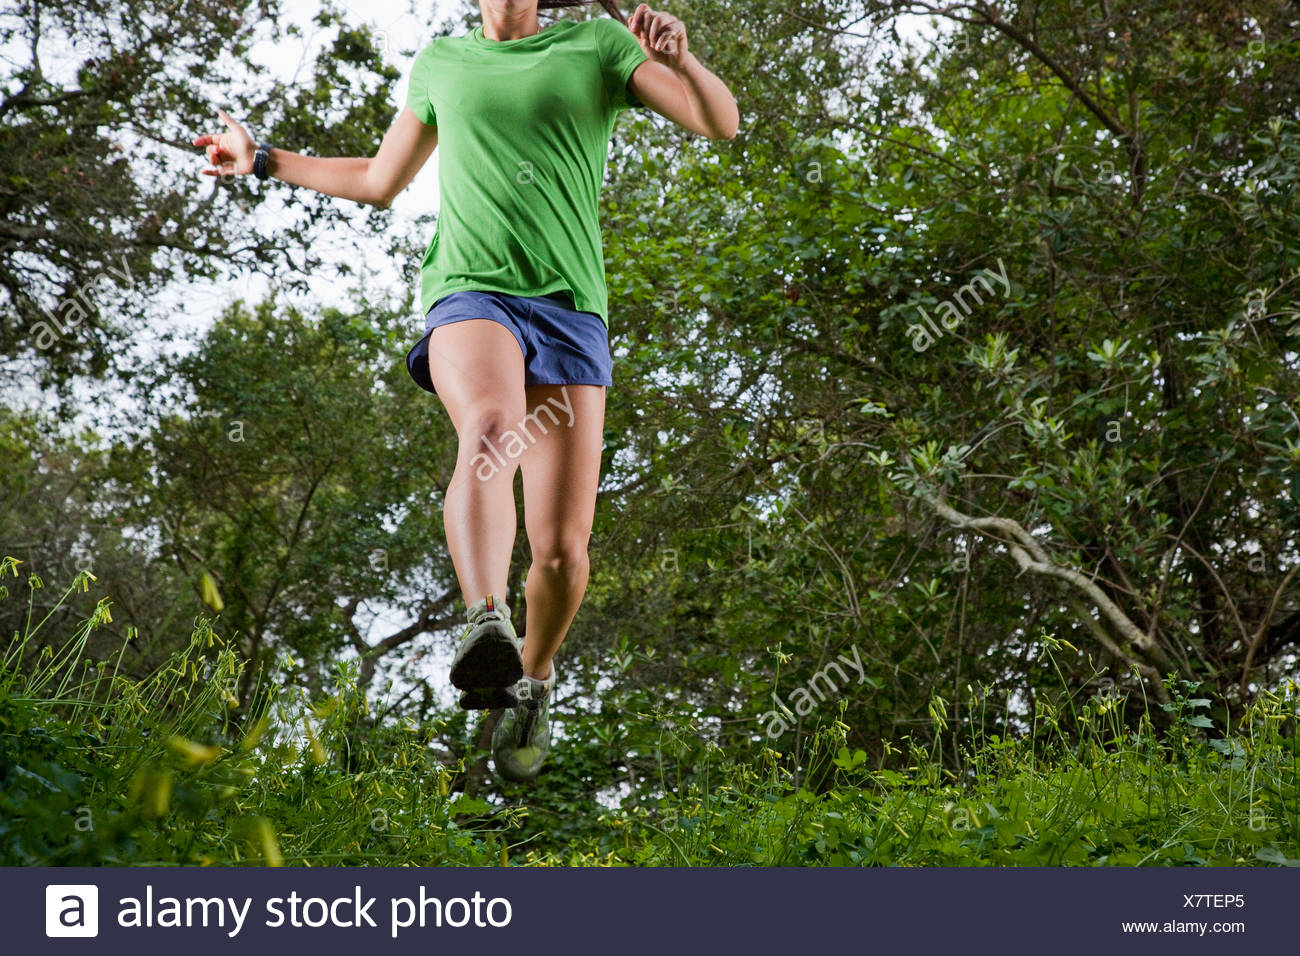 View from below of a woman trail running through a green meadow in the woods. - Stock Image